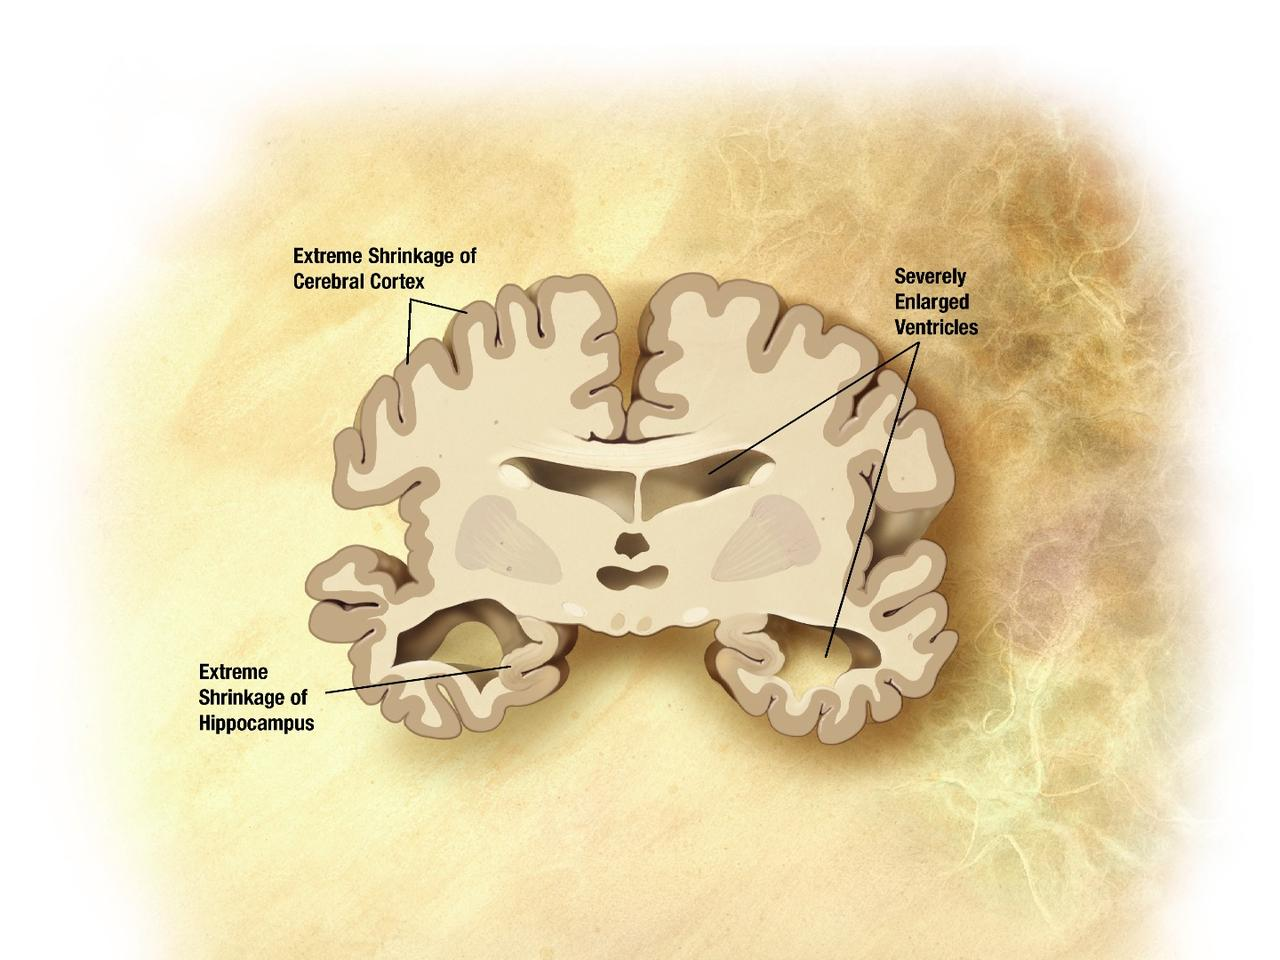 Cross-section of a brain affected by Alzheimer's disease